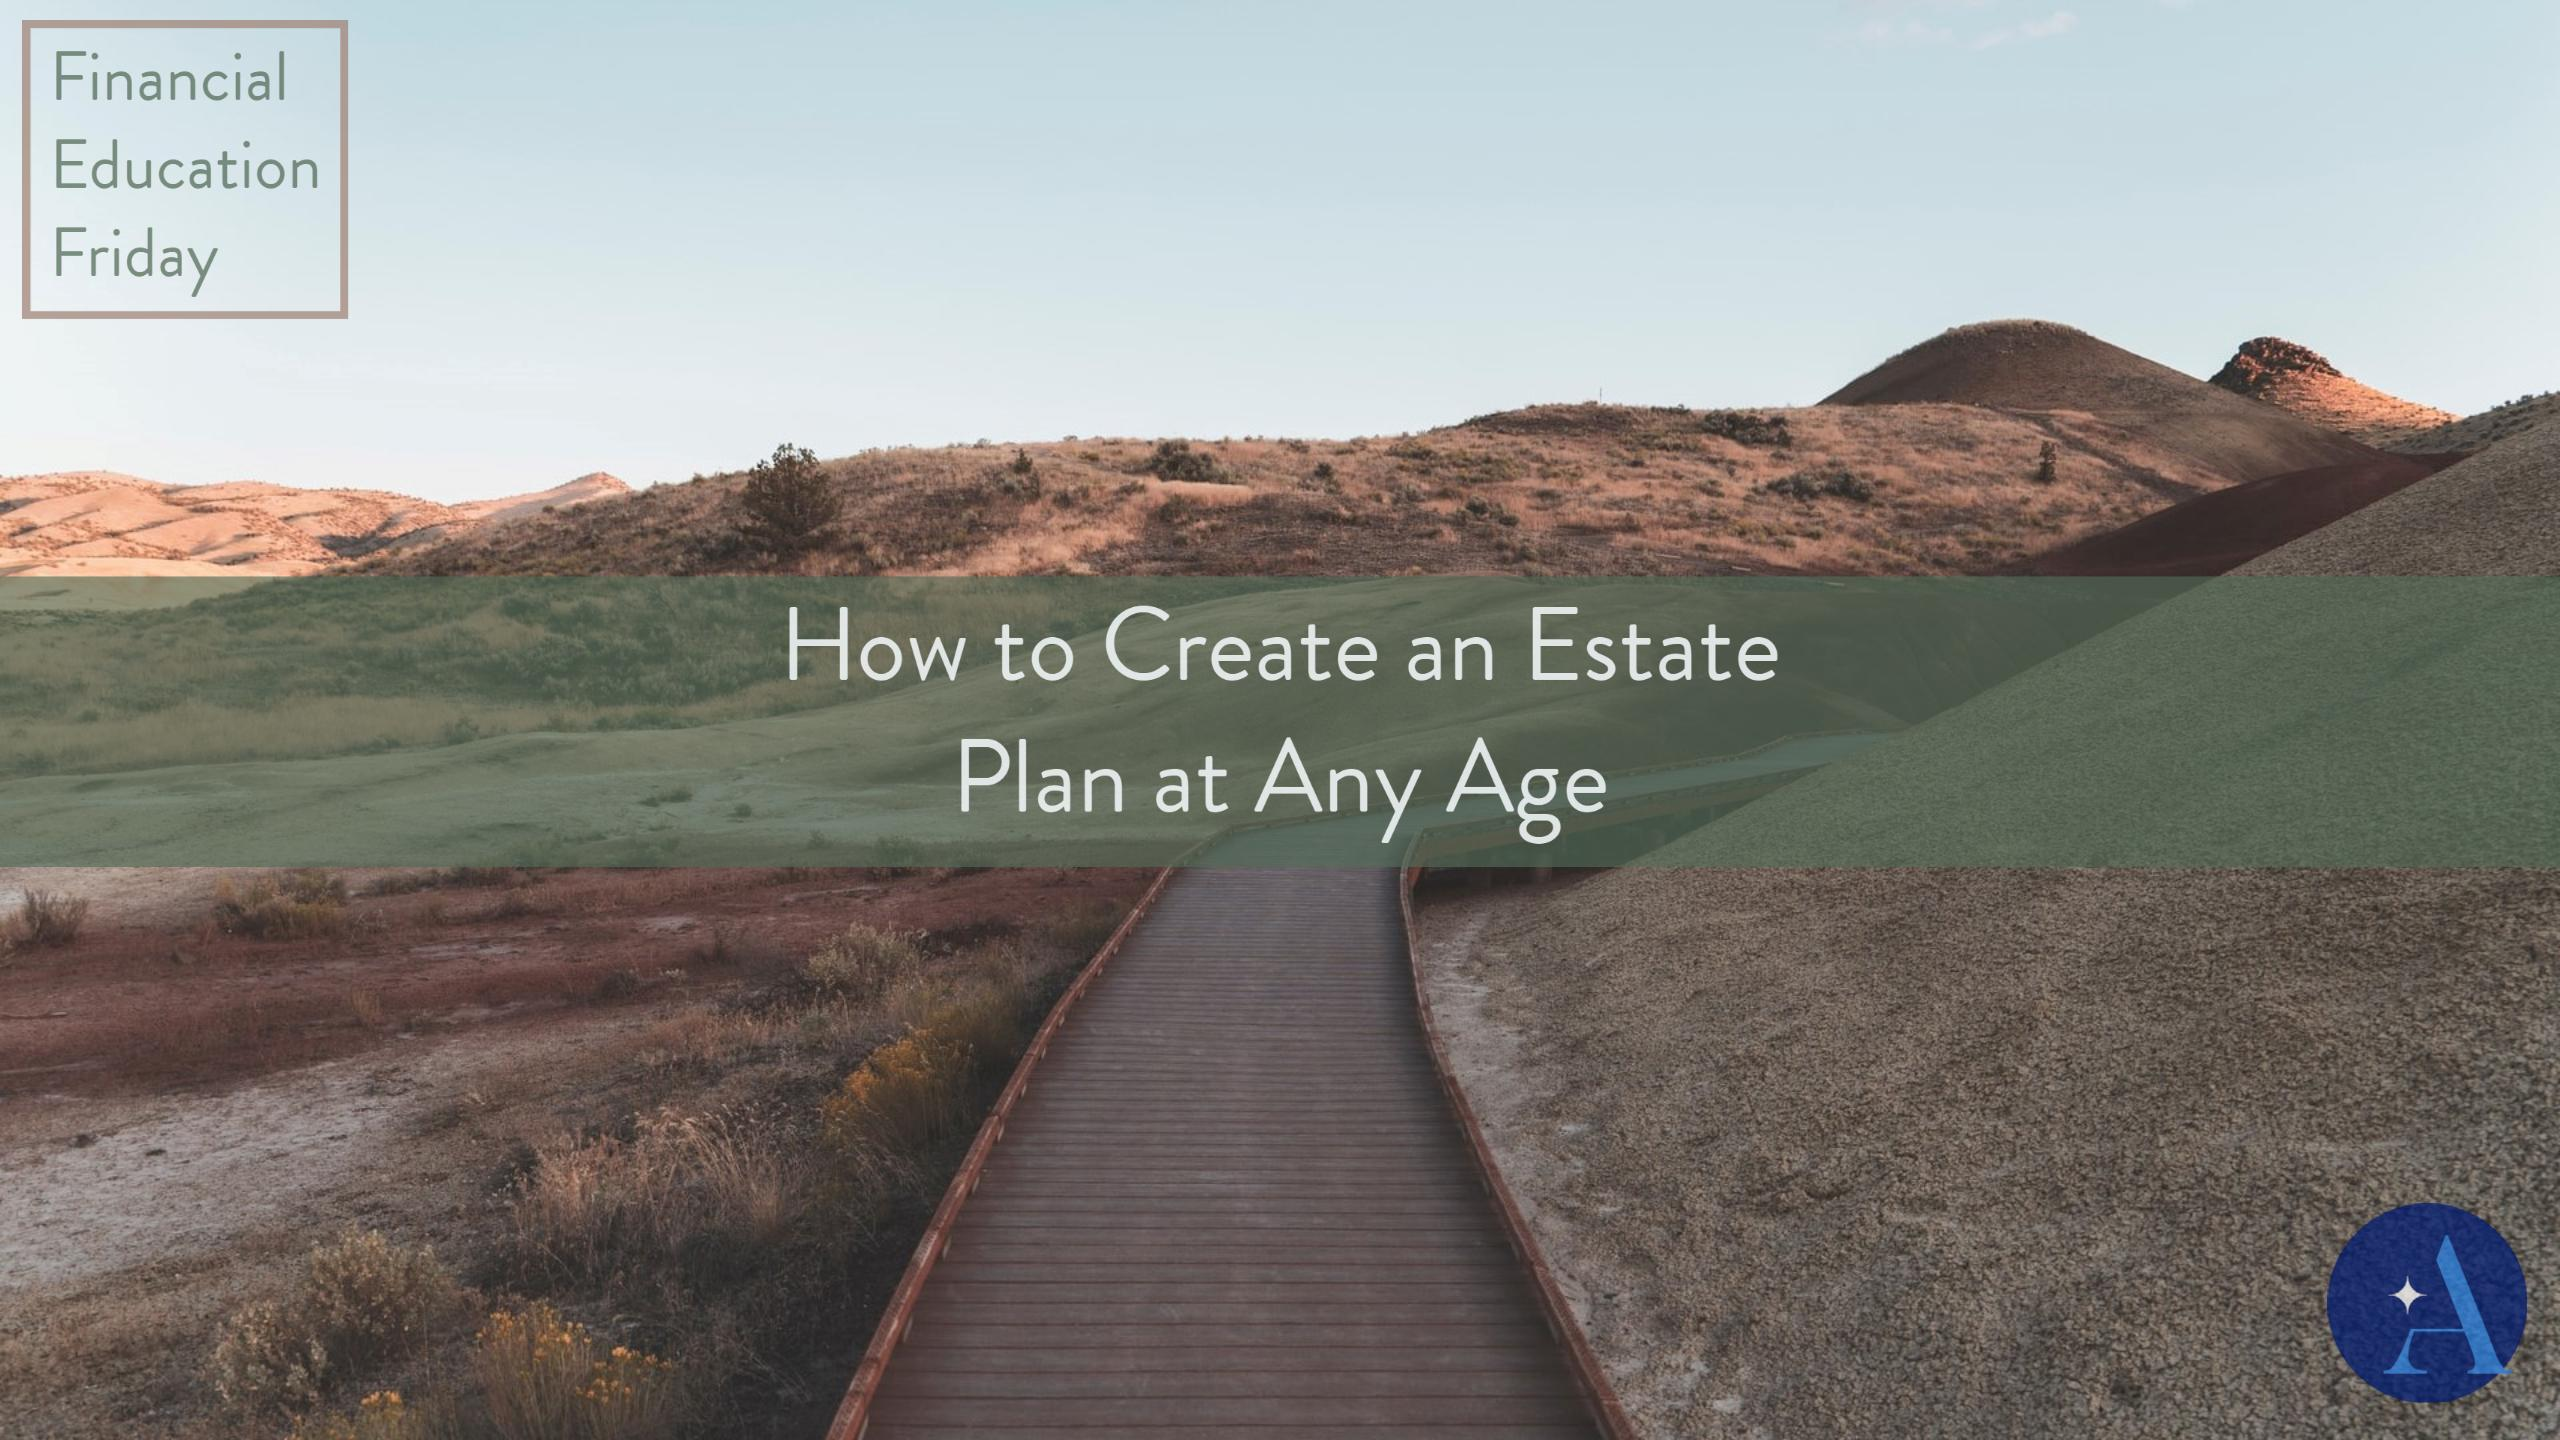 FinEdFriday: How to Create an Estate Plan at Any Age Thumbnail